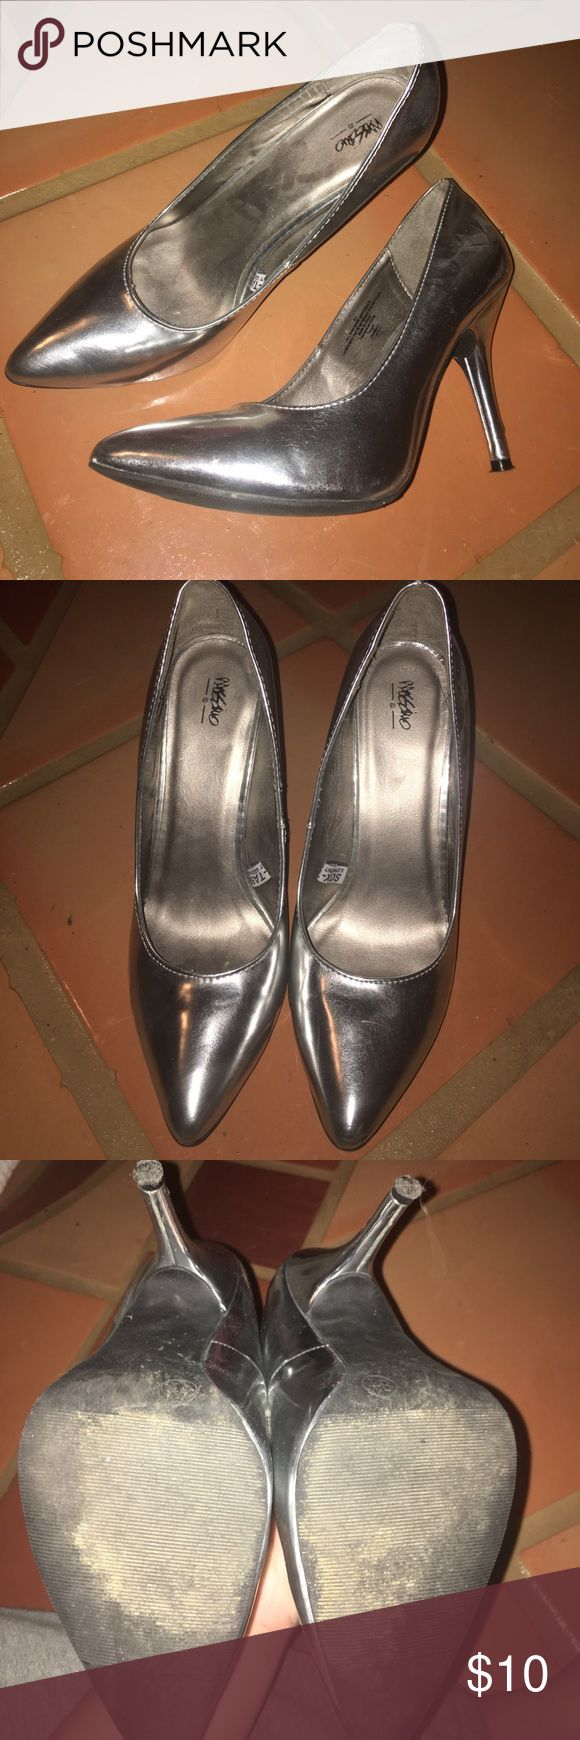 🦄 Silver metallic pumps size 8.5🦄 Gently worn, scuff on heel Mossimo Supply Co Shoes Heels